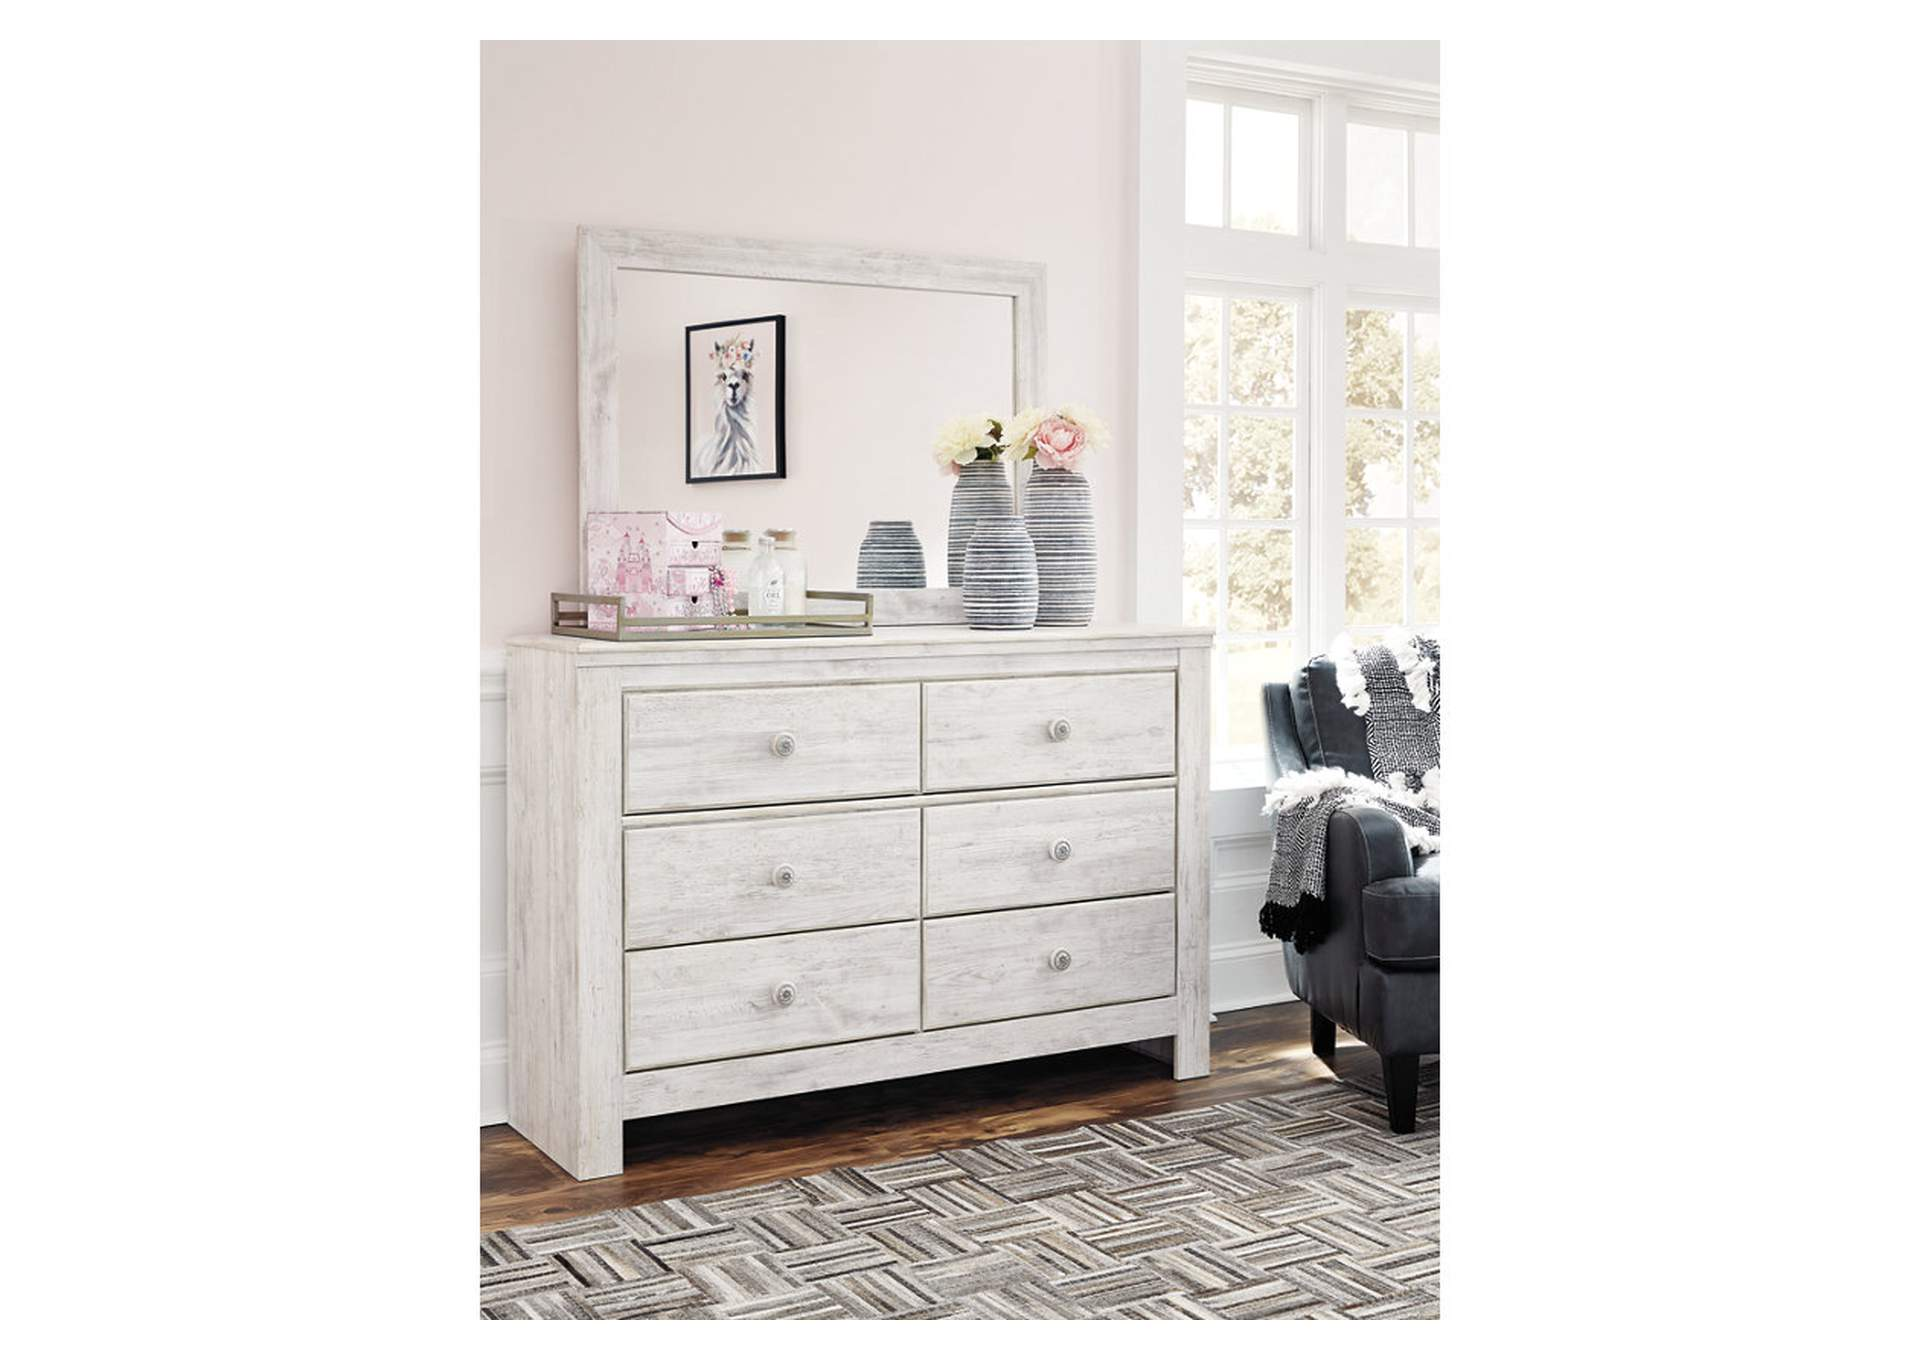 Paxberry Whitewash Dresser and Mirror,Signature Design By Ashley